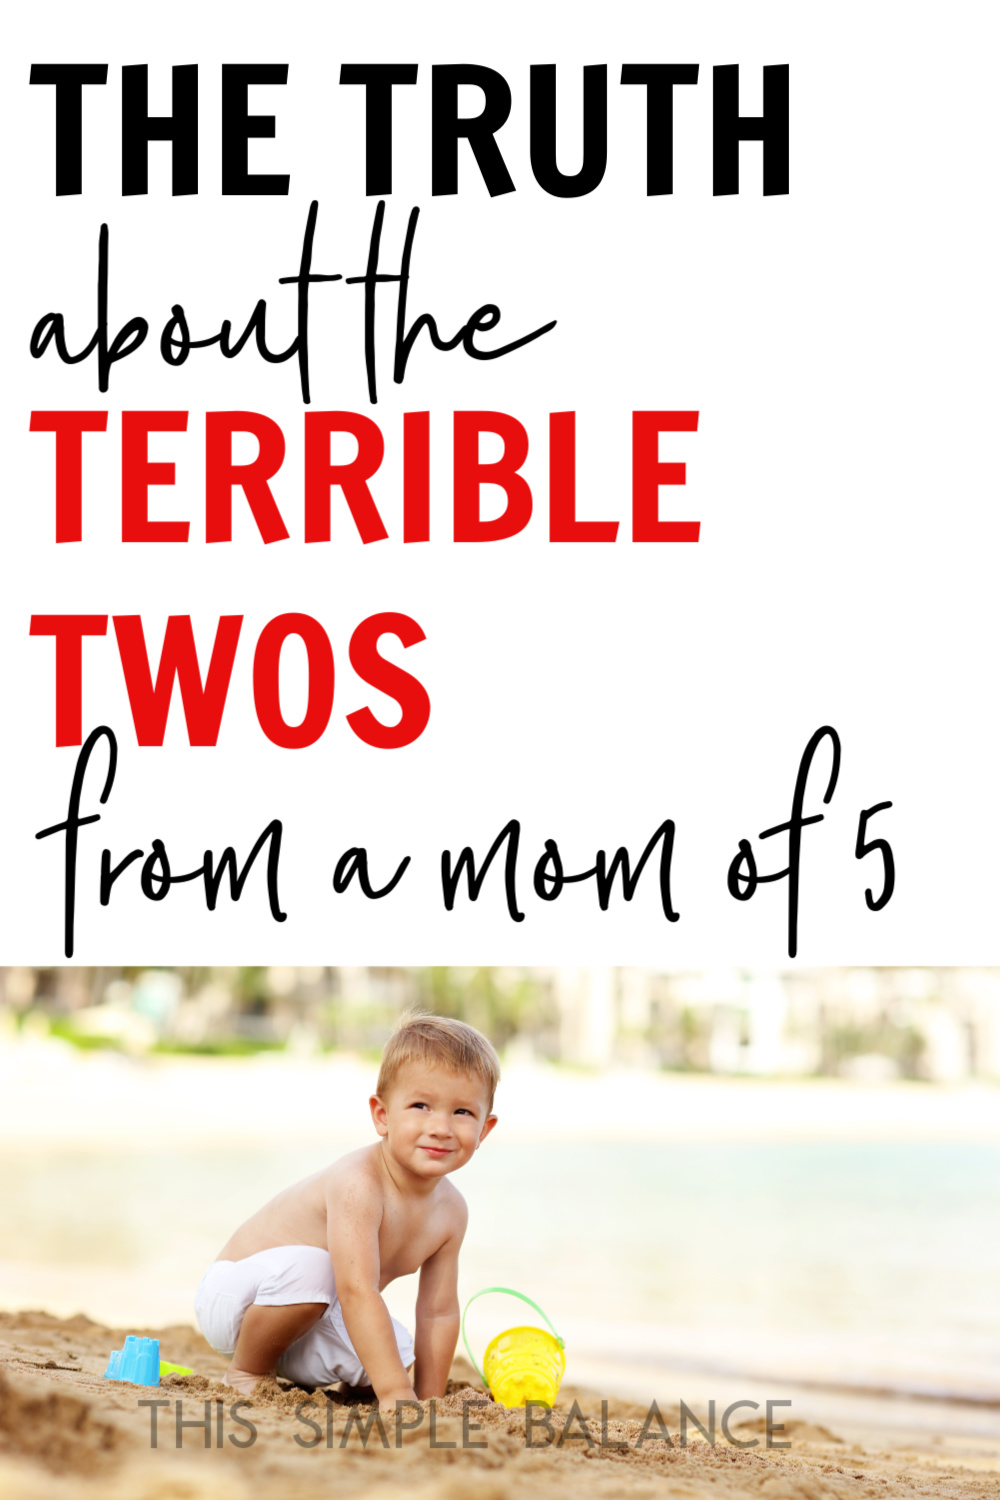 The terrible twos can seem truly terrible, especially when you're going through them for the first time. But on my fourth try, I finally figured out how to love the terrible twos (not just survive them). Get the tips and strategies I wish I had!